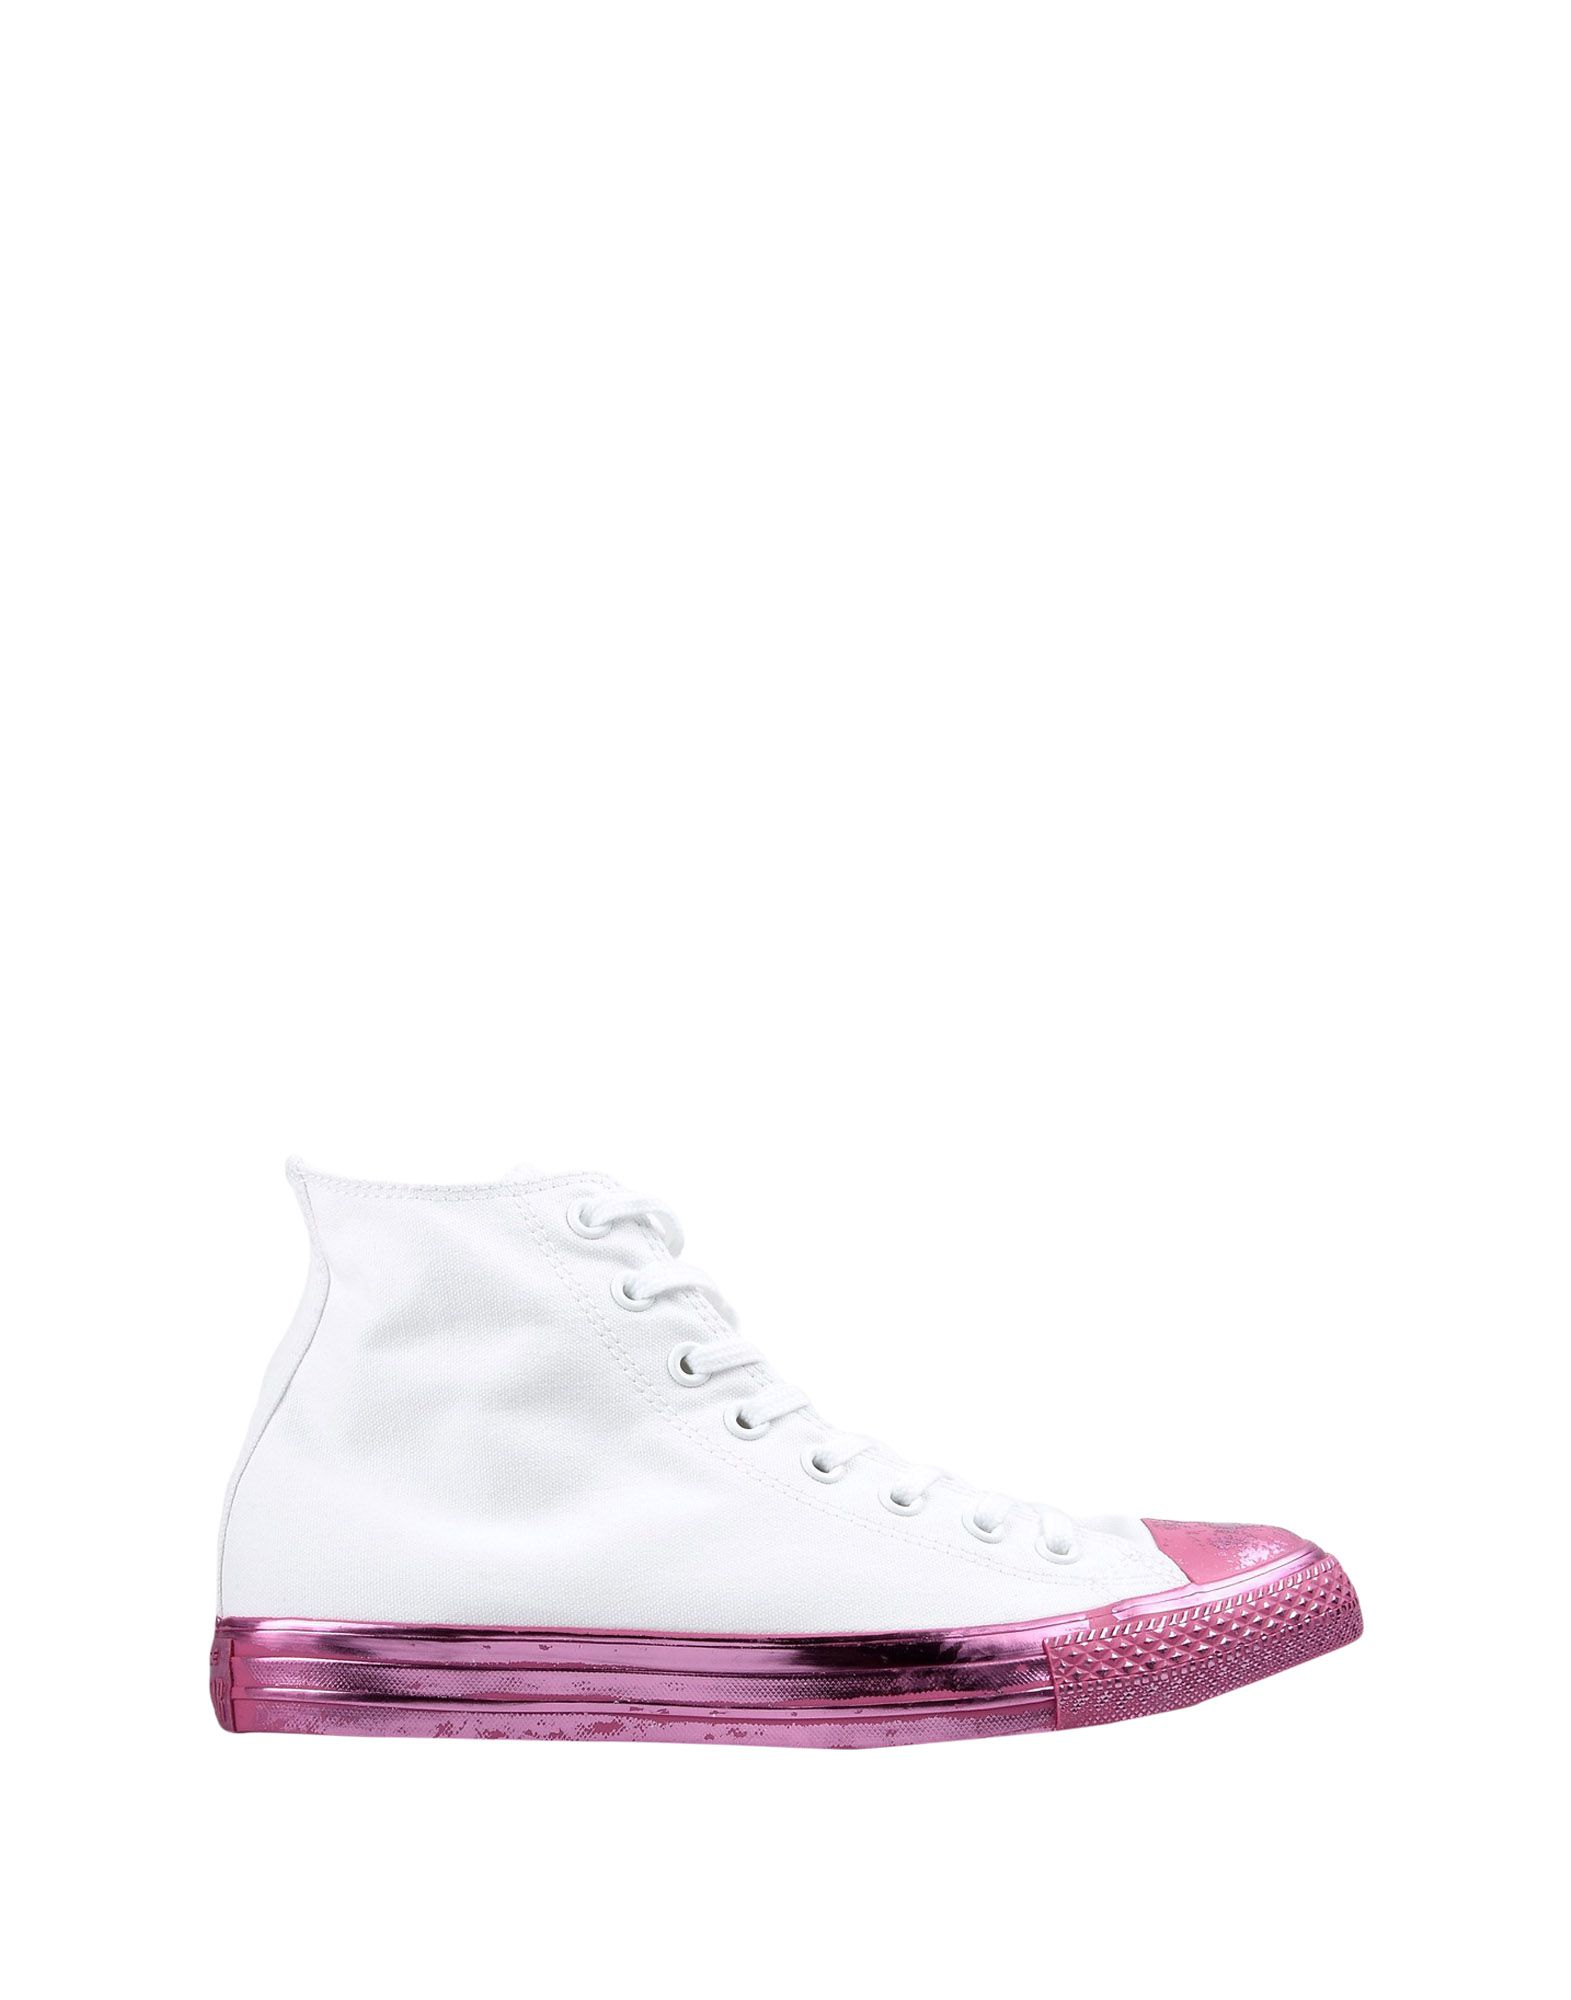 Sneakers Converse All Star Ct As Hi Canvas Color Rubber - Femme - Sneakers Converse All Star sur